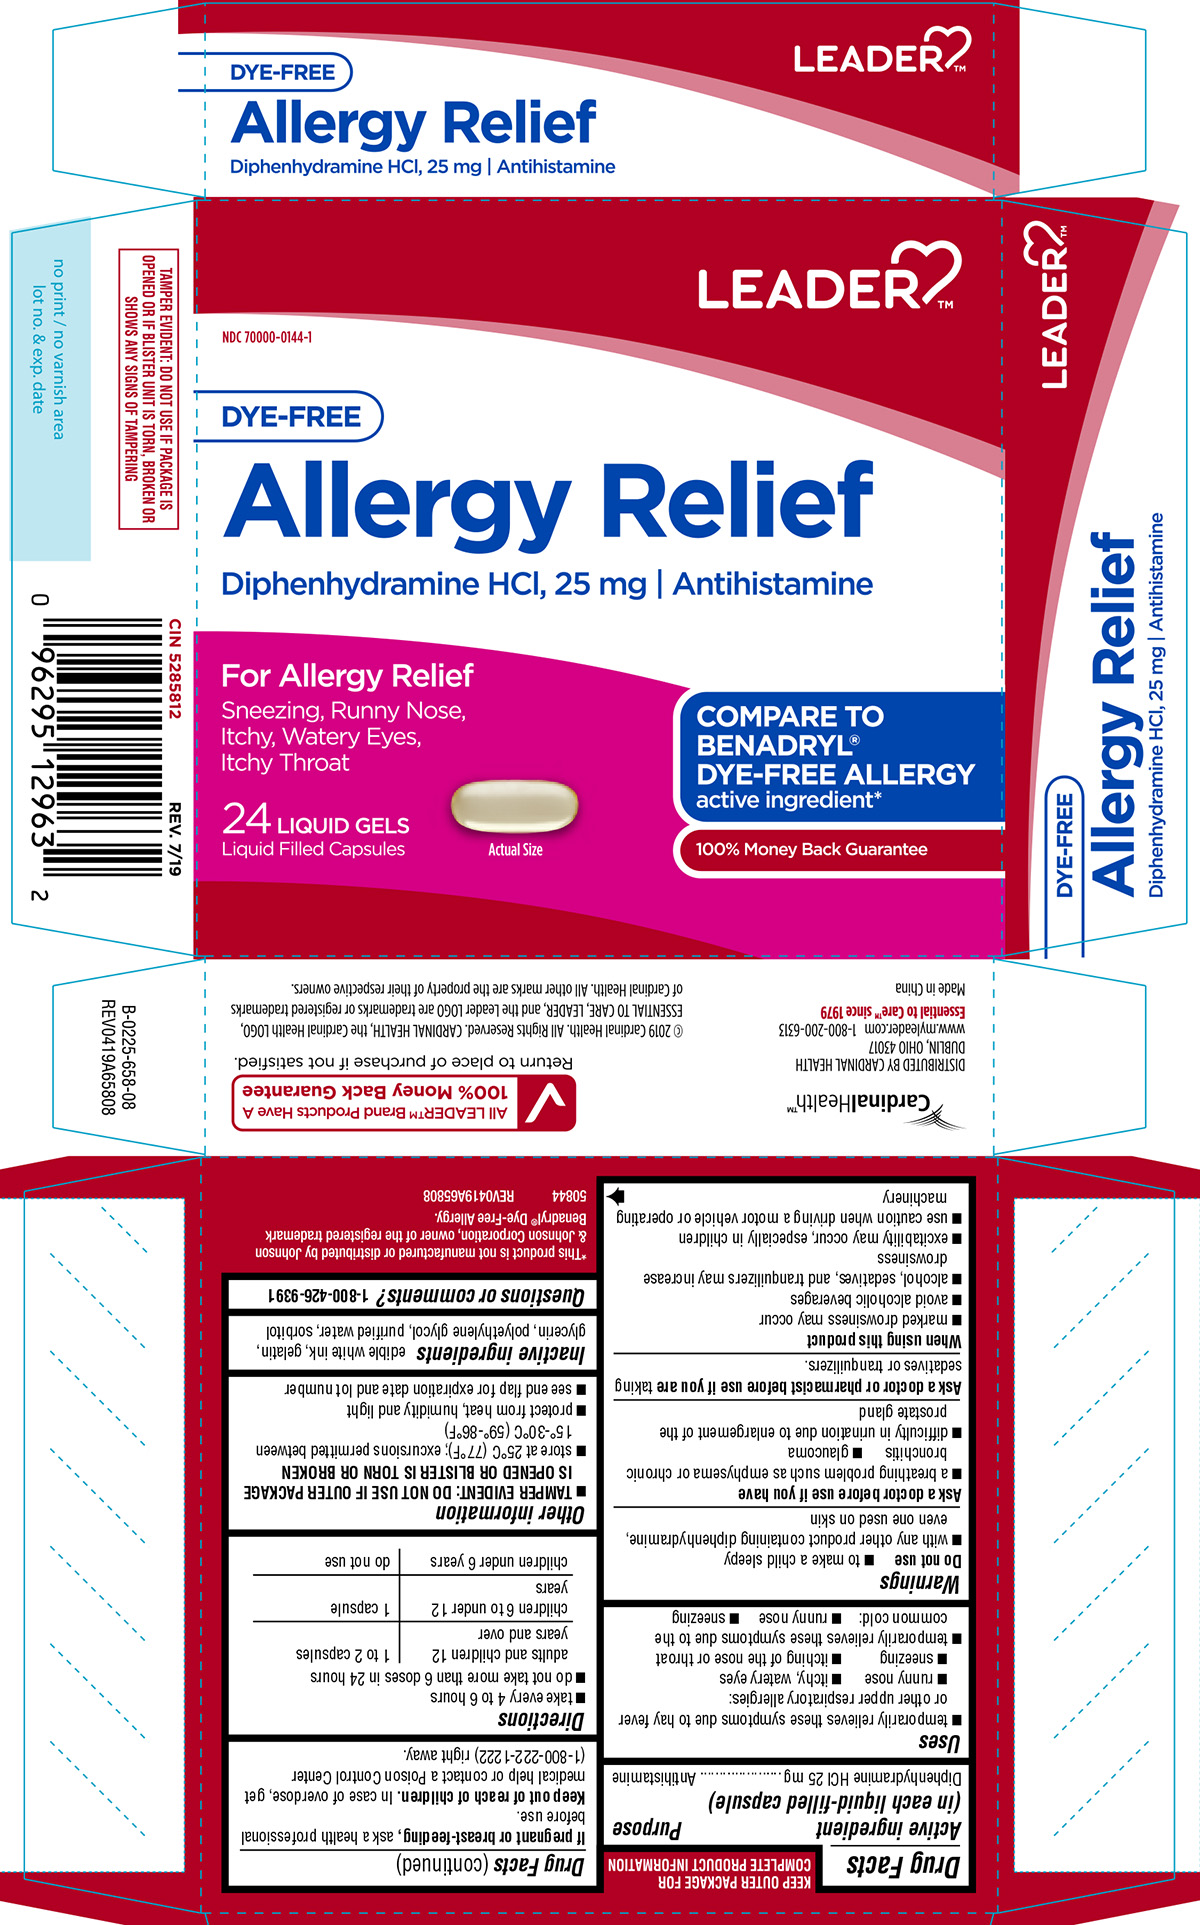 Diphenhydramine HCl - Dye-Free (Allergy Relief)